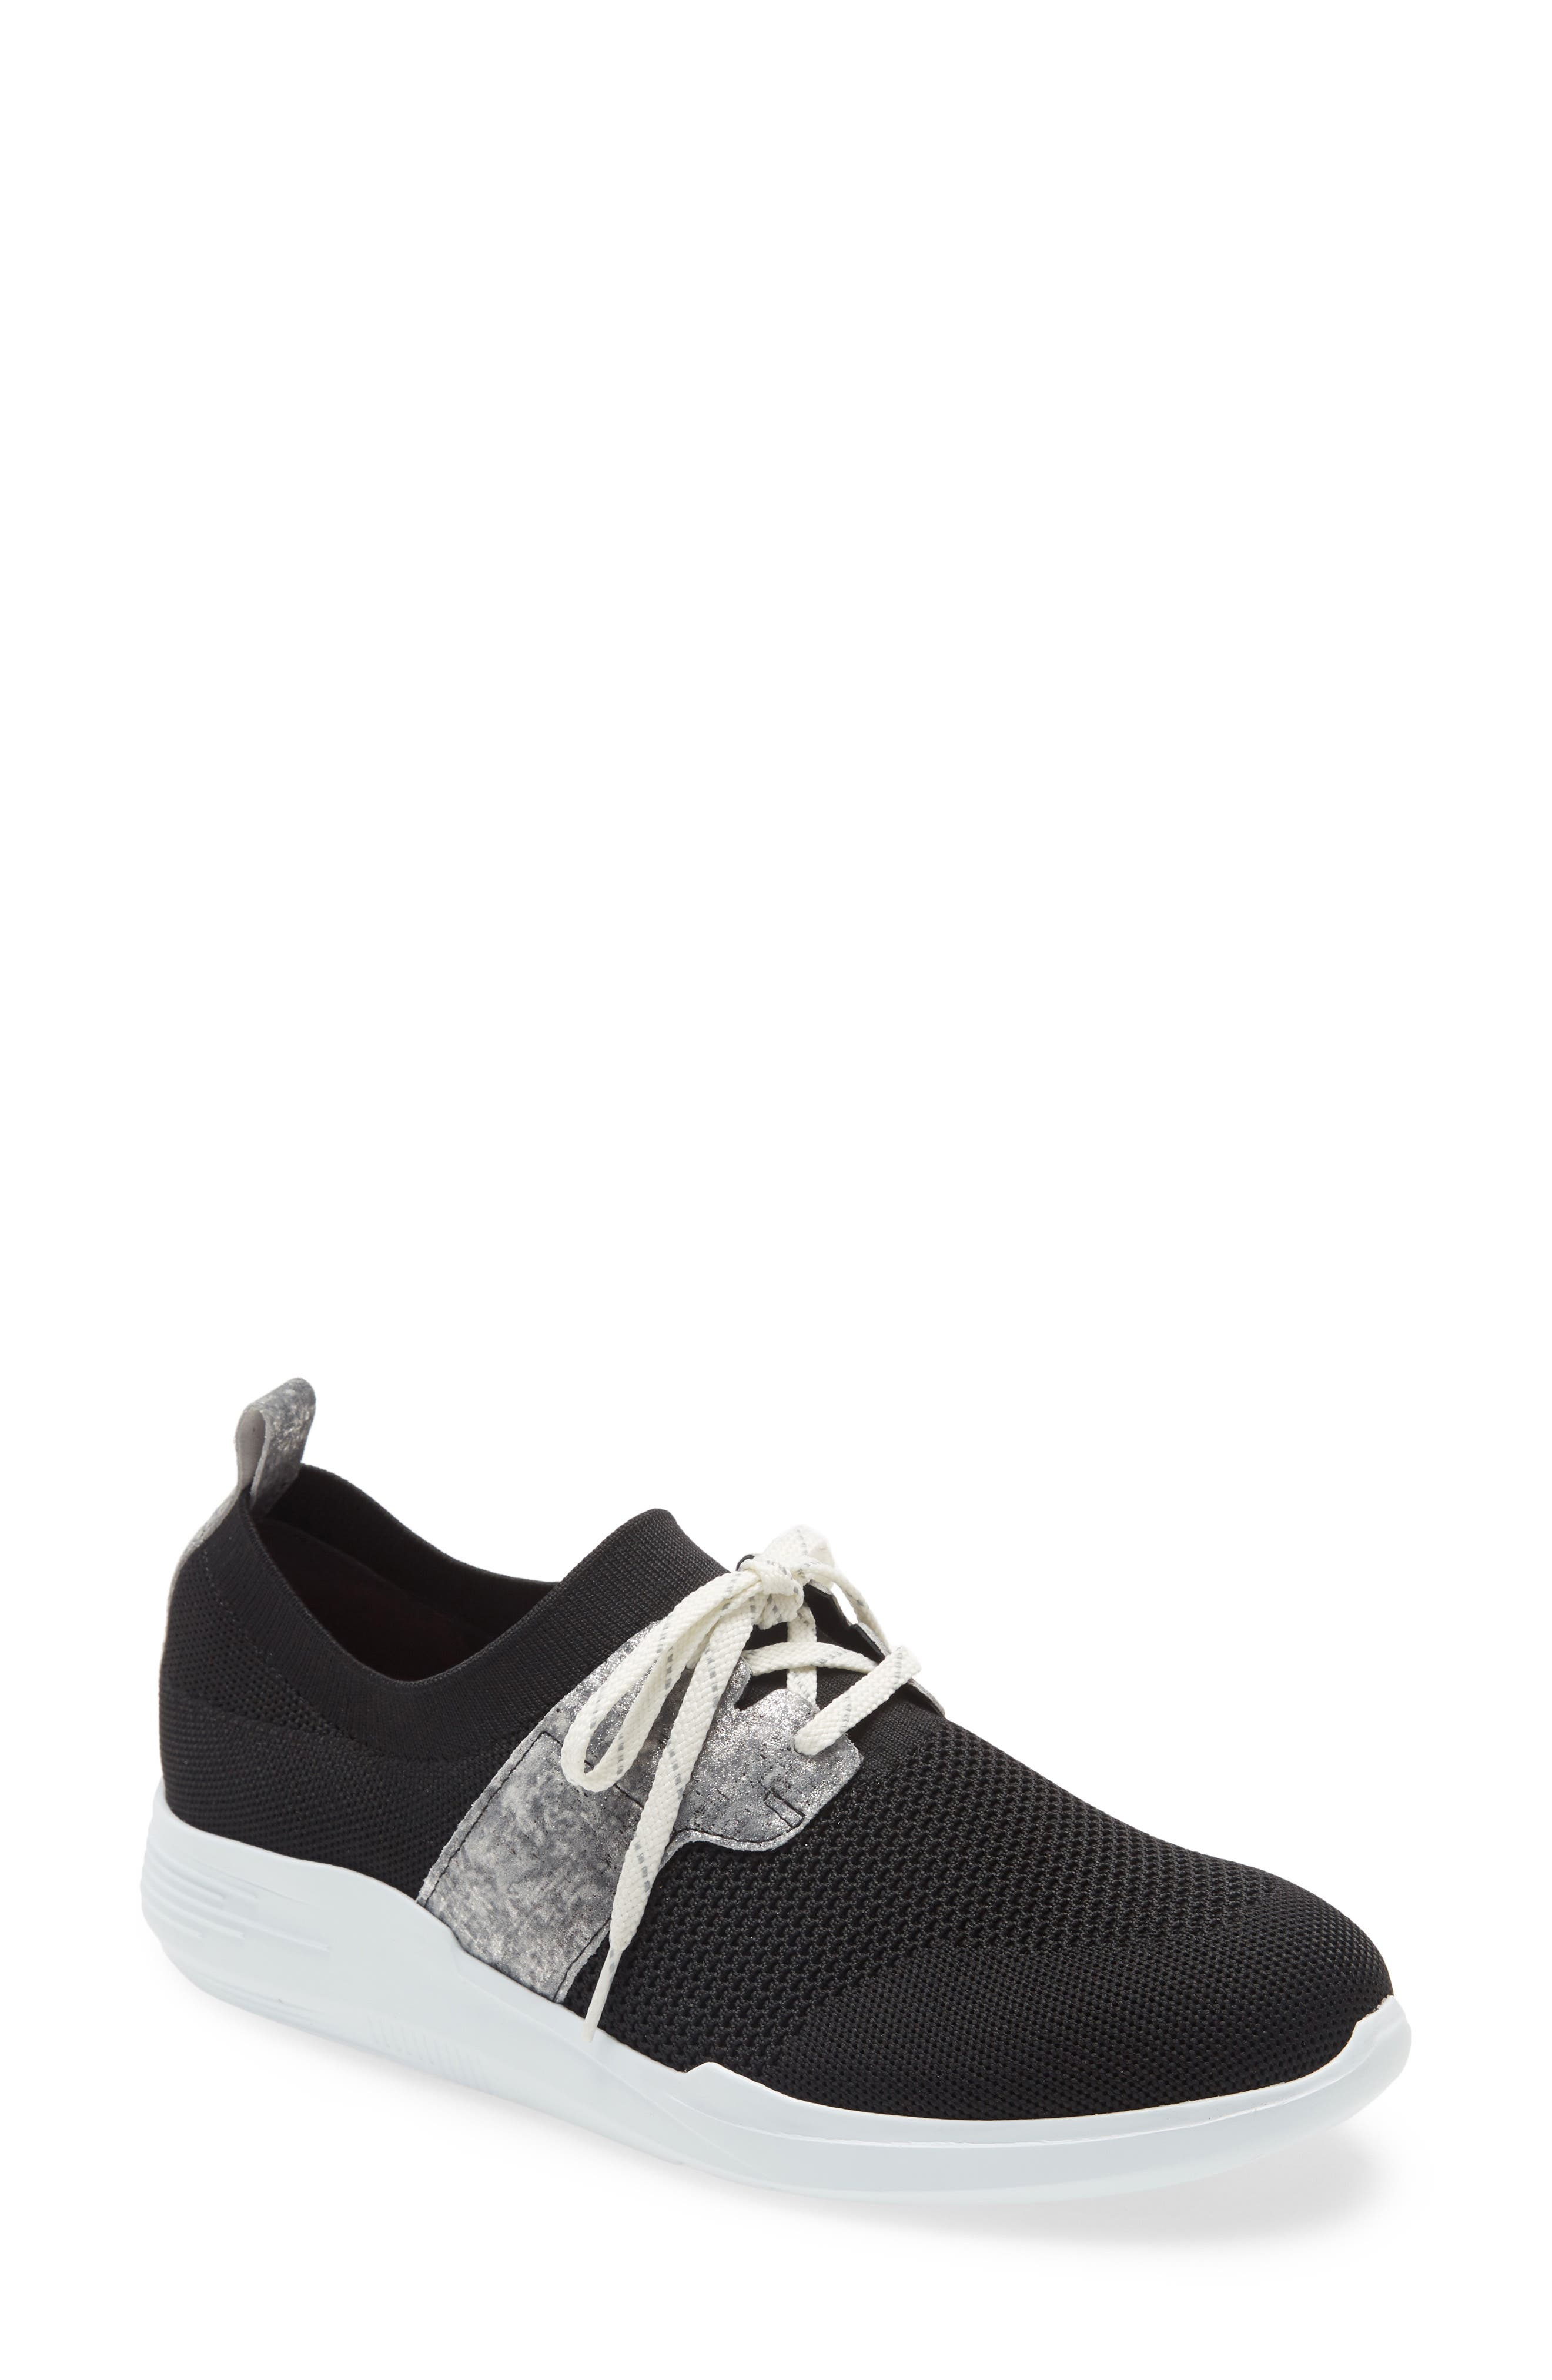 A flexible knit upper spells all-day comfort in a breathable sneaker topped with a sleek lacing cage. Style Name: Munro Sandi Sneaker (Women). Style Number: 5994577. Available in stores.